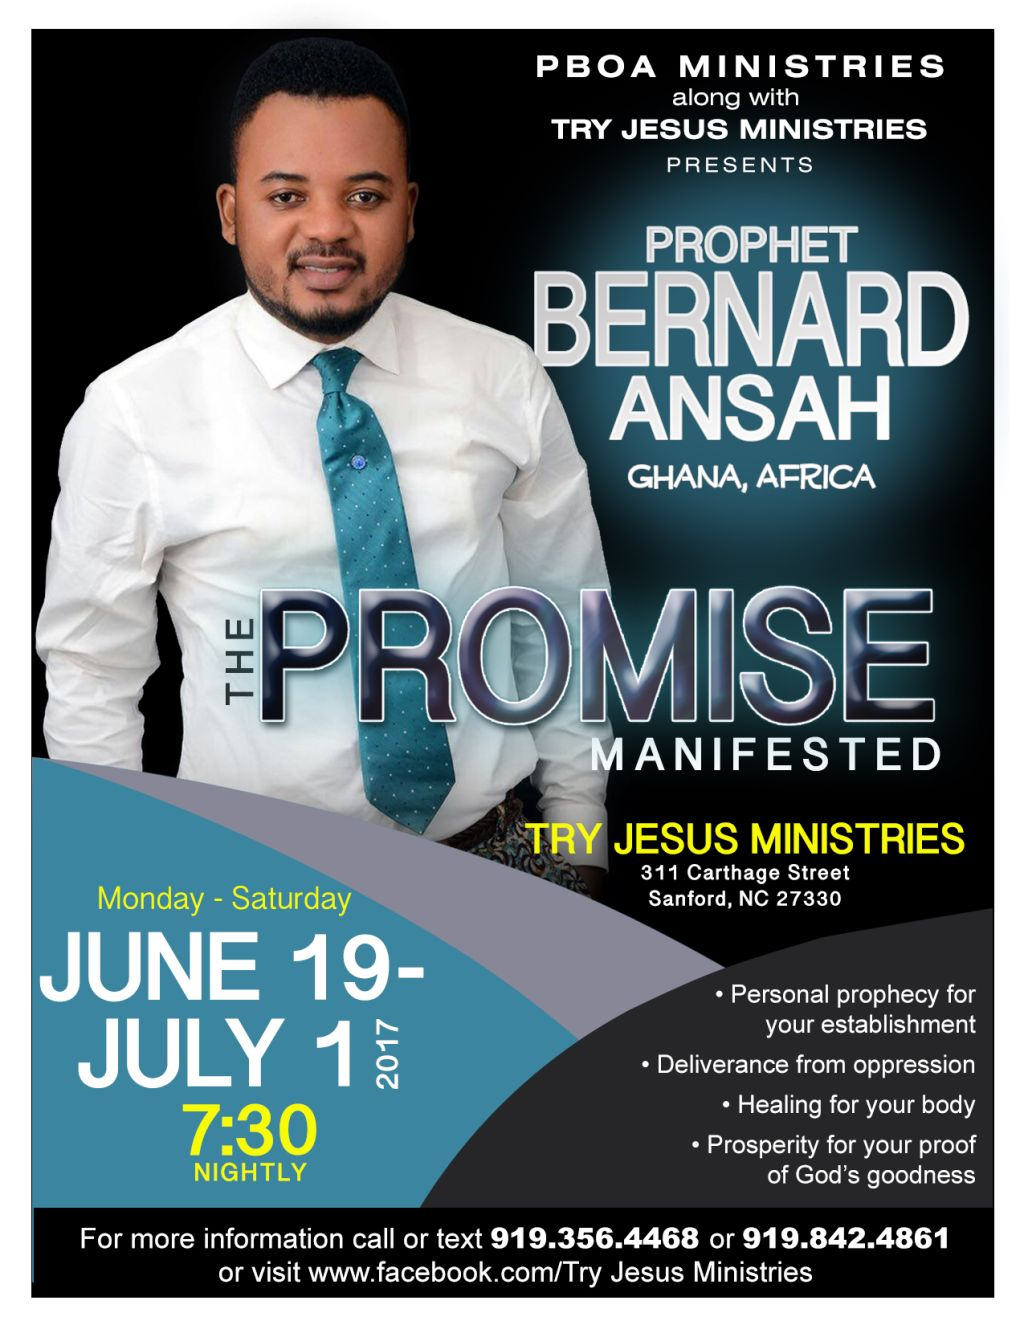 Try Jesus Ministries Presents: The Promise Manifested | The